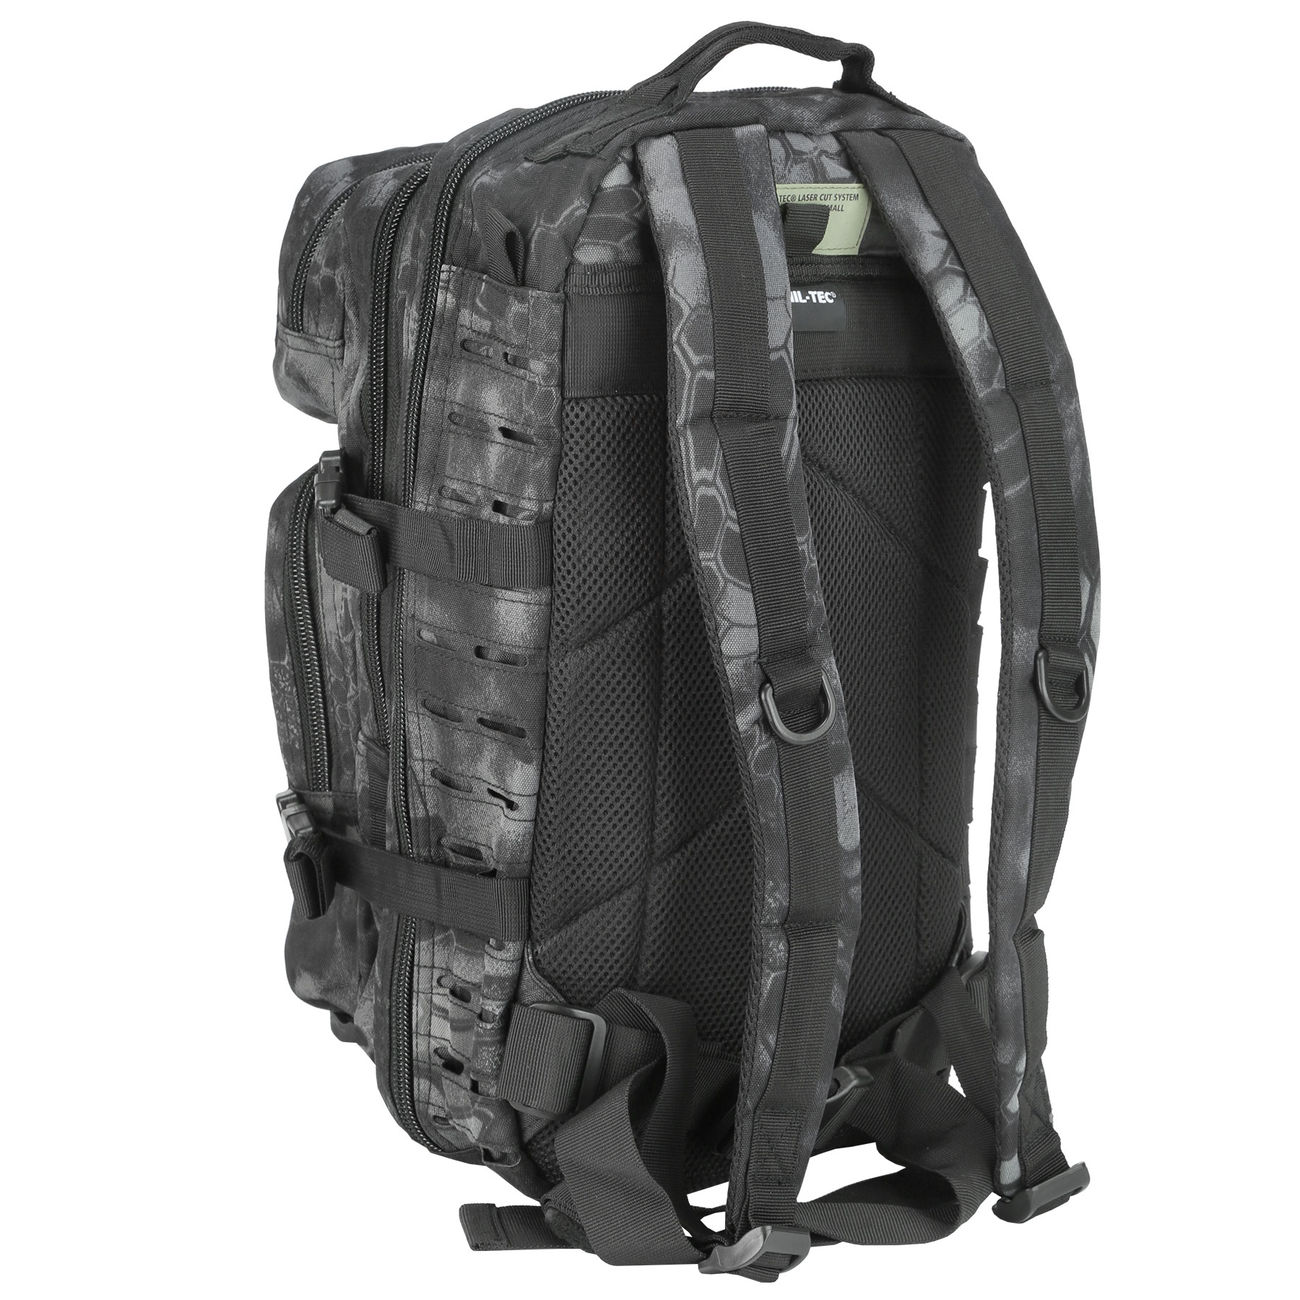 Mil-Tec Rucksack US Assault SM Laser-Cut Mandra Night 20L 3